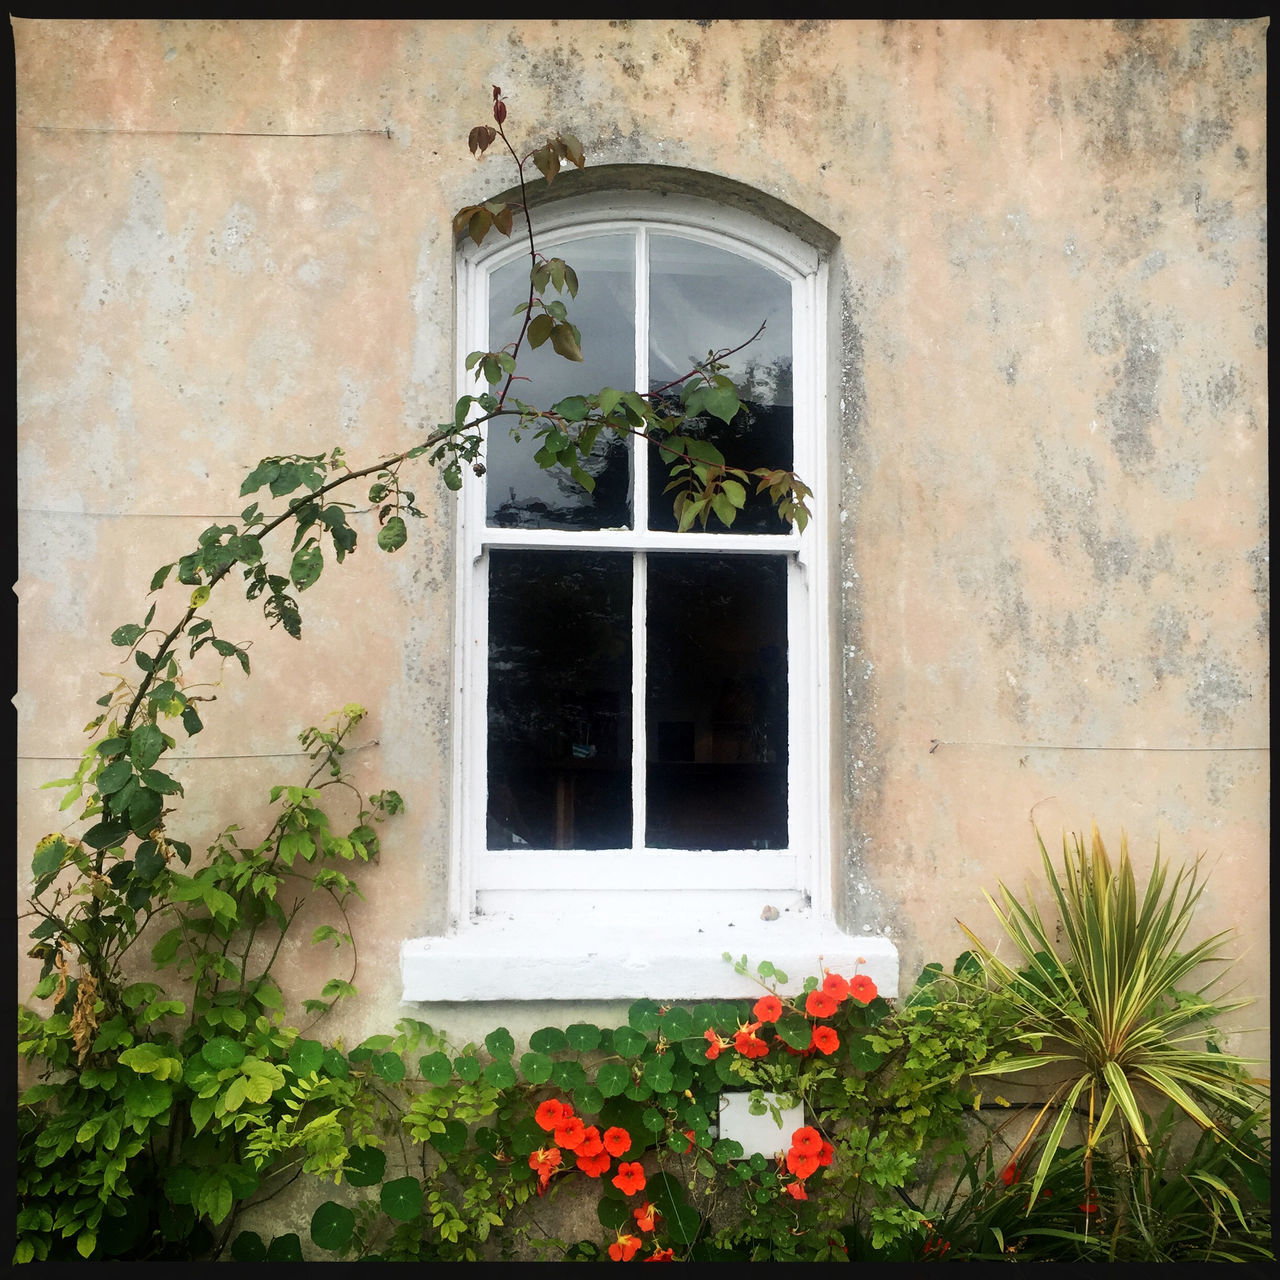 architecture, window, plant, growth, building exterior, built structure, flower, no people, outdoors, day, window box, nature